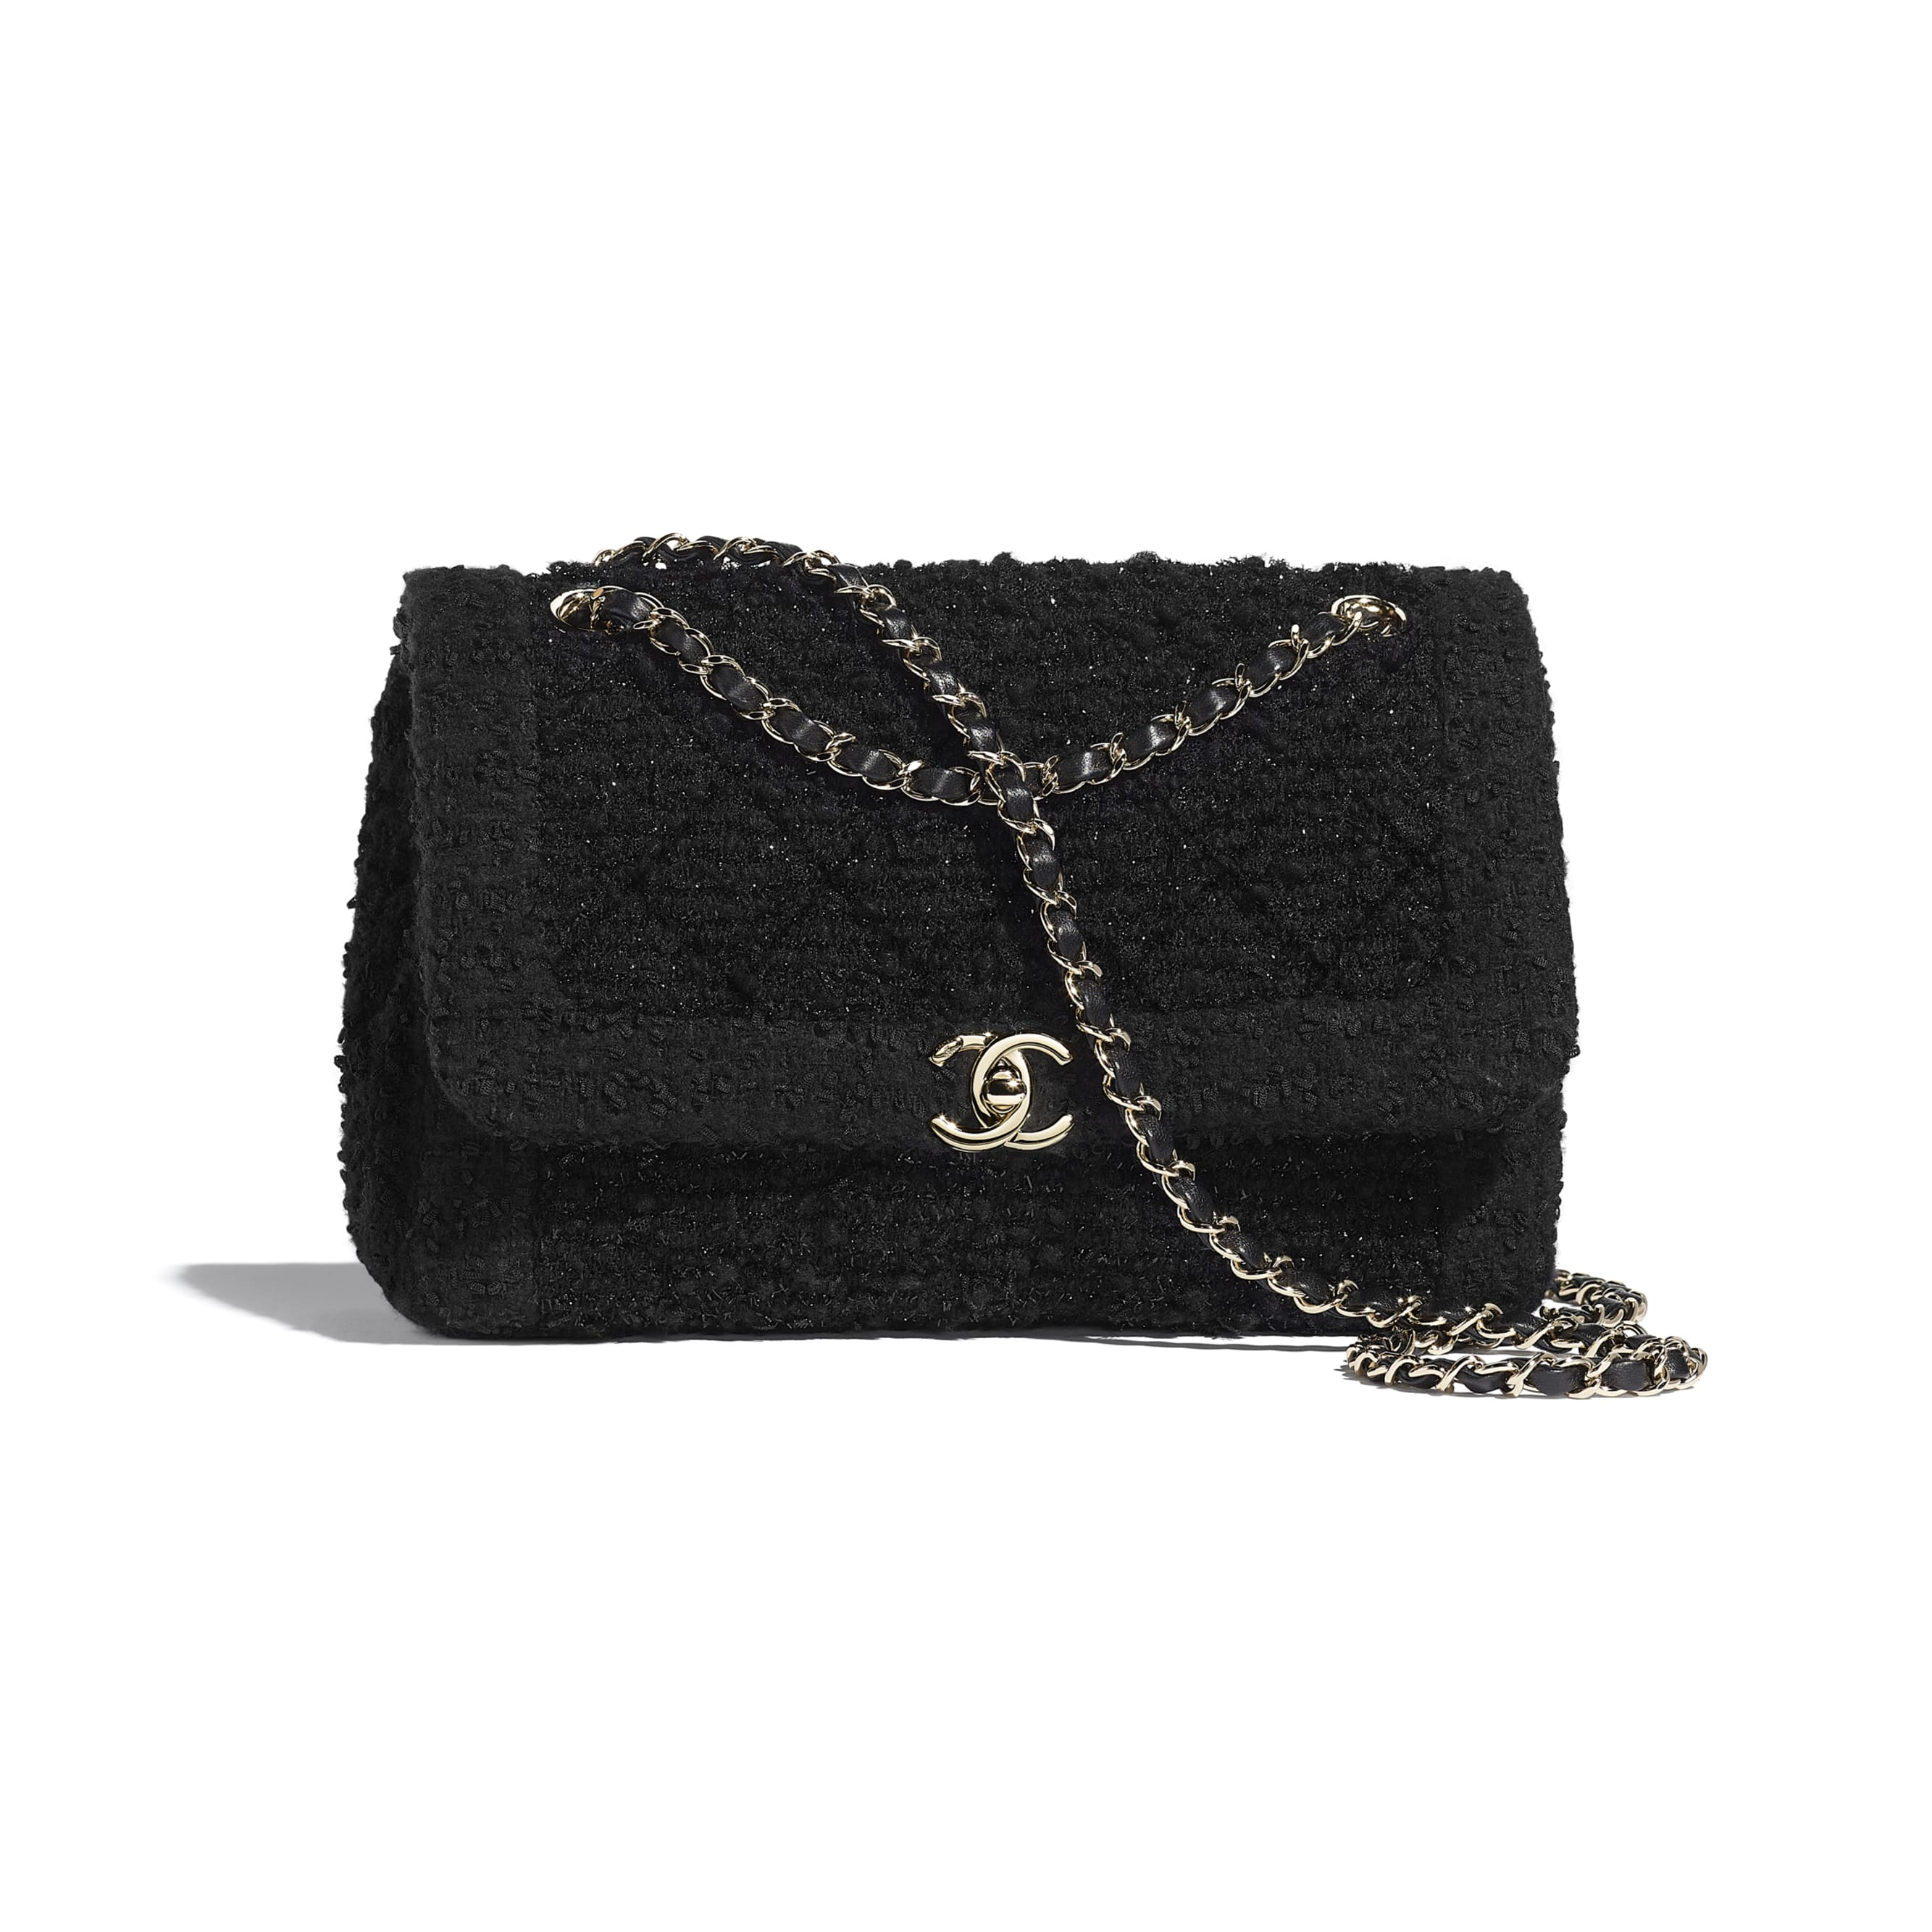 Flap Bag - Black - Tweed & Gold-Tone Metal - CHANEL - Default view - see standard sized version